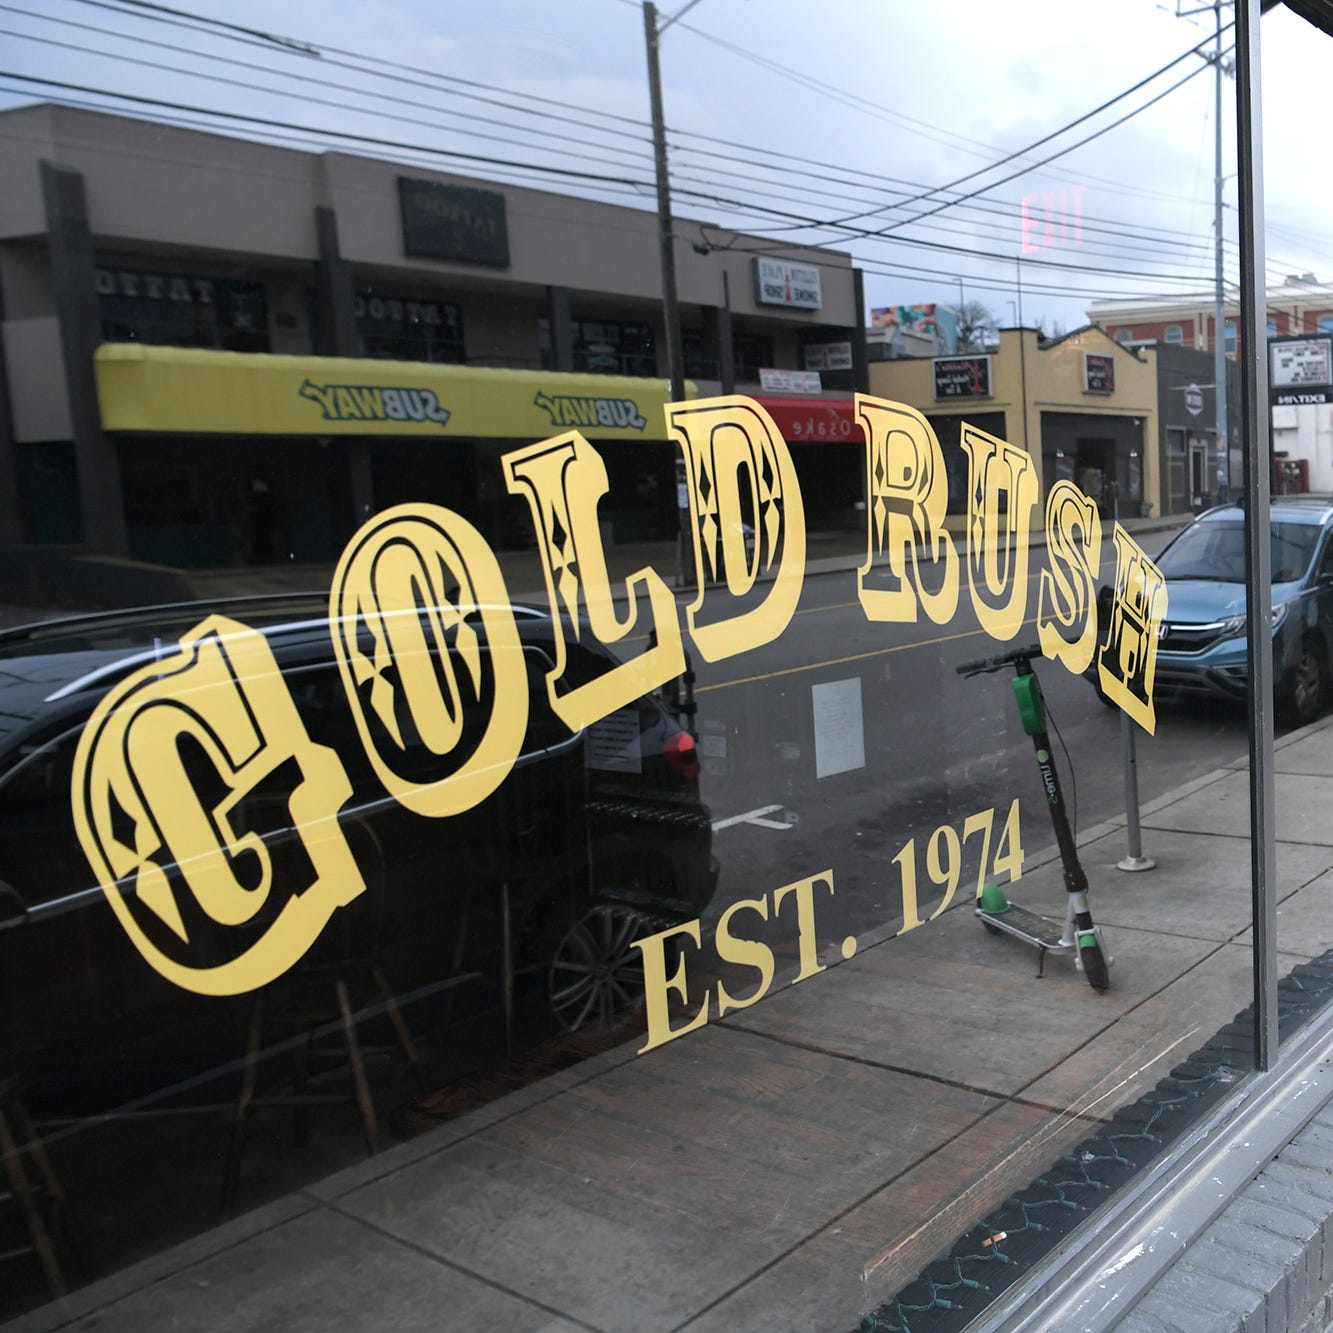 After 44 years, Gold Rush on Elliston Place has closed